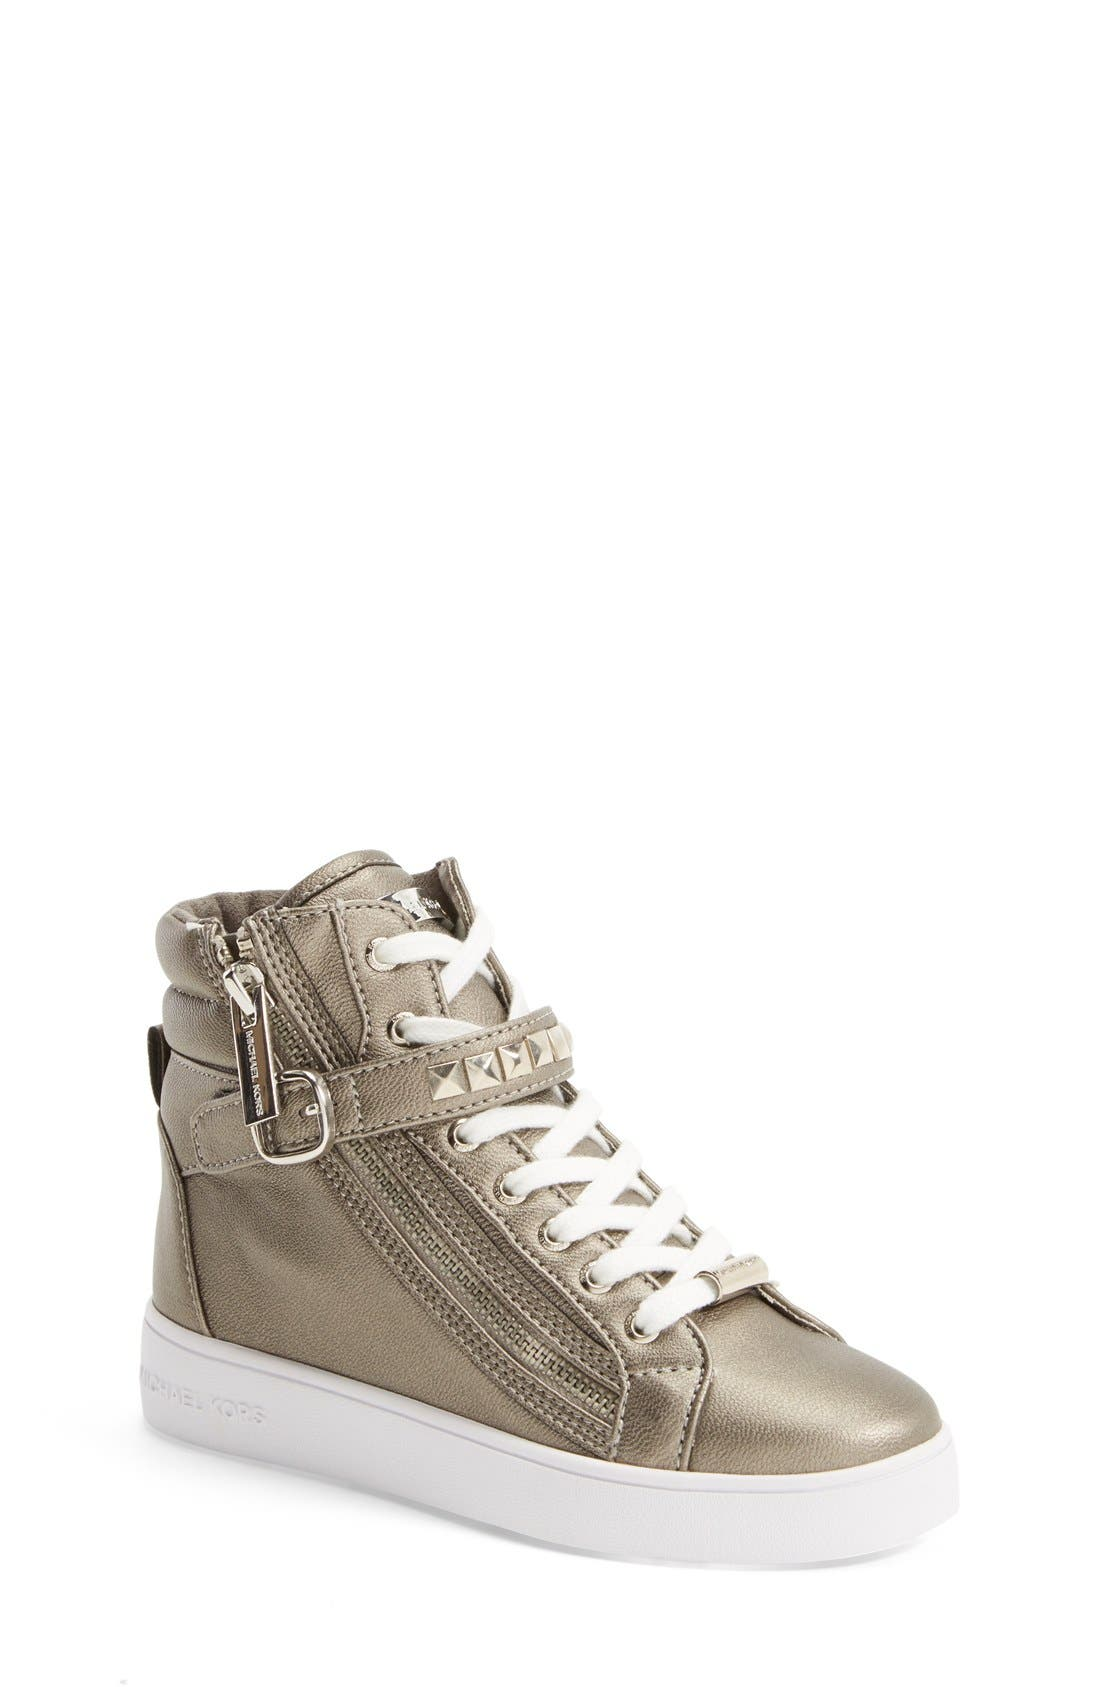 'Ivy Rory' High Top Sneaker,                             Main thumbnail 2, color,